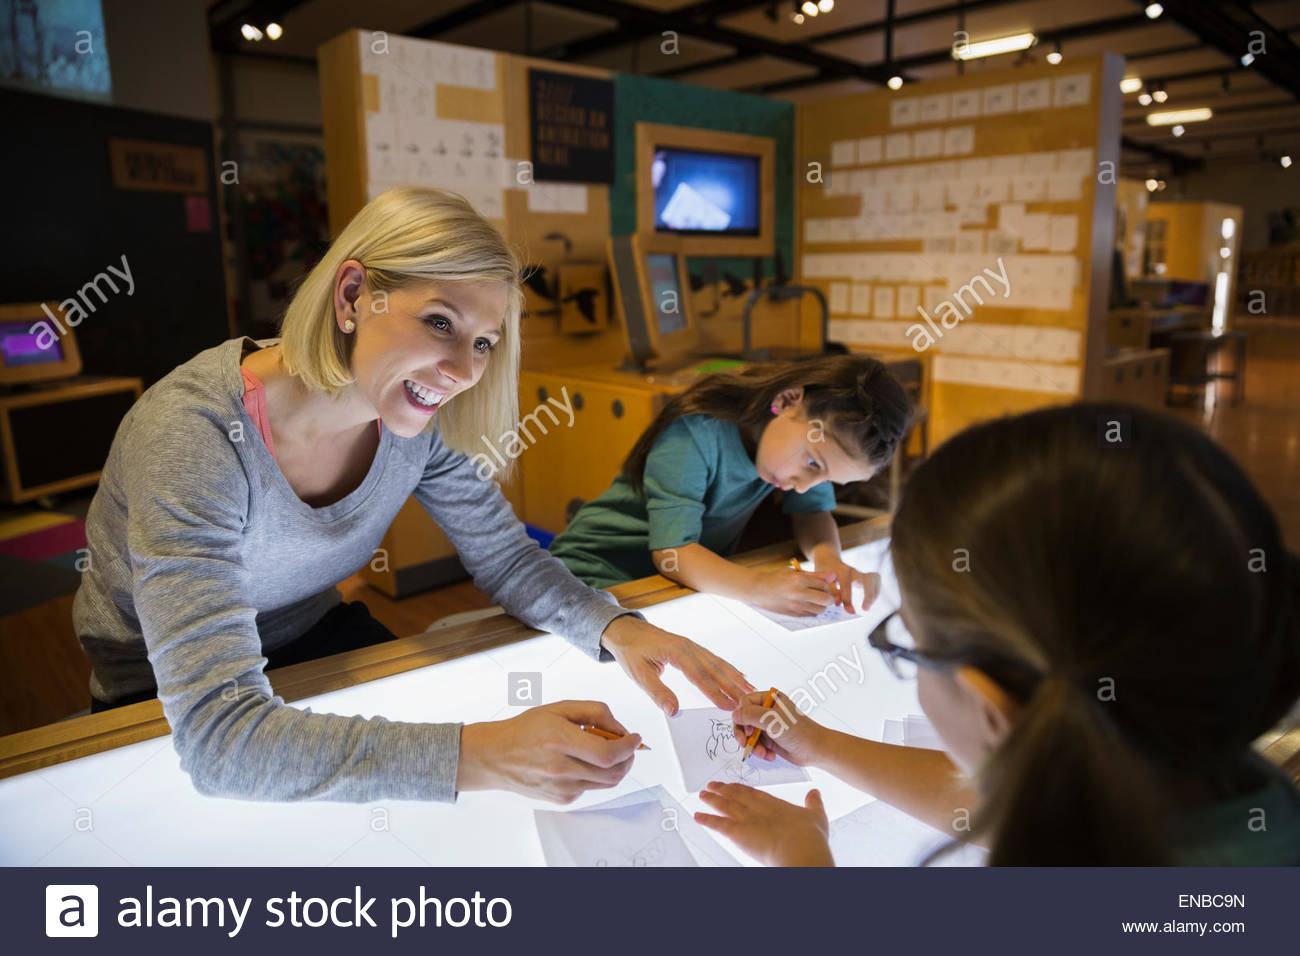 Family tracing on light table at science center - Stock Image